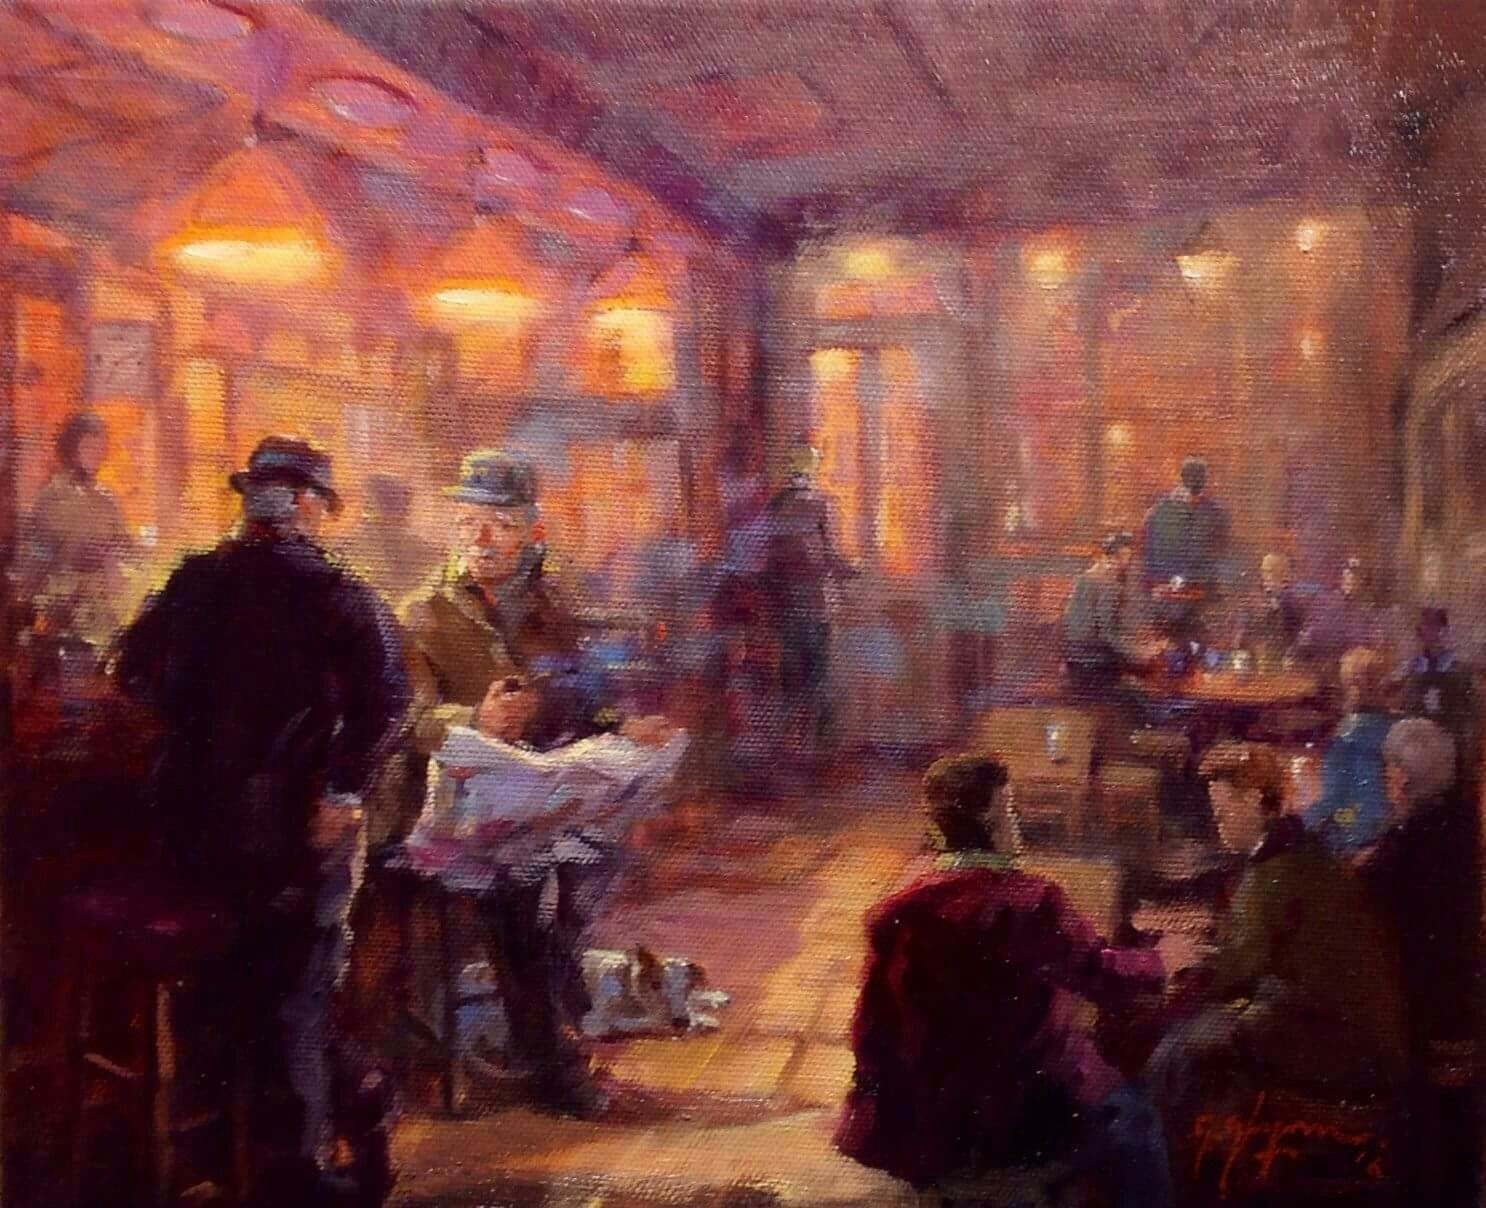 'Full House, Duke of York, Belfast, by Gerry Glynn.